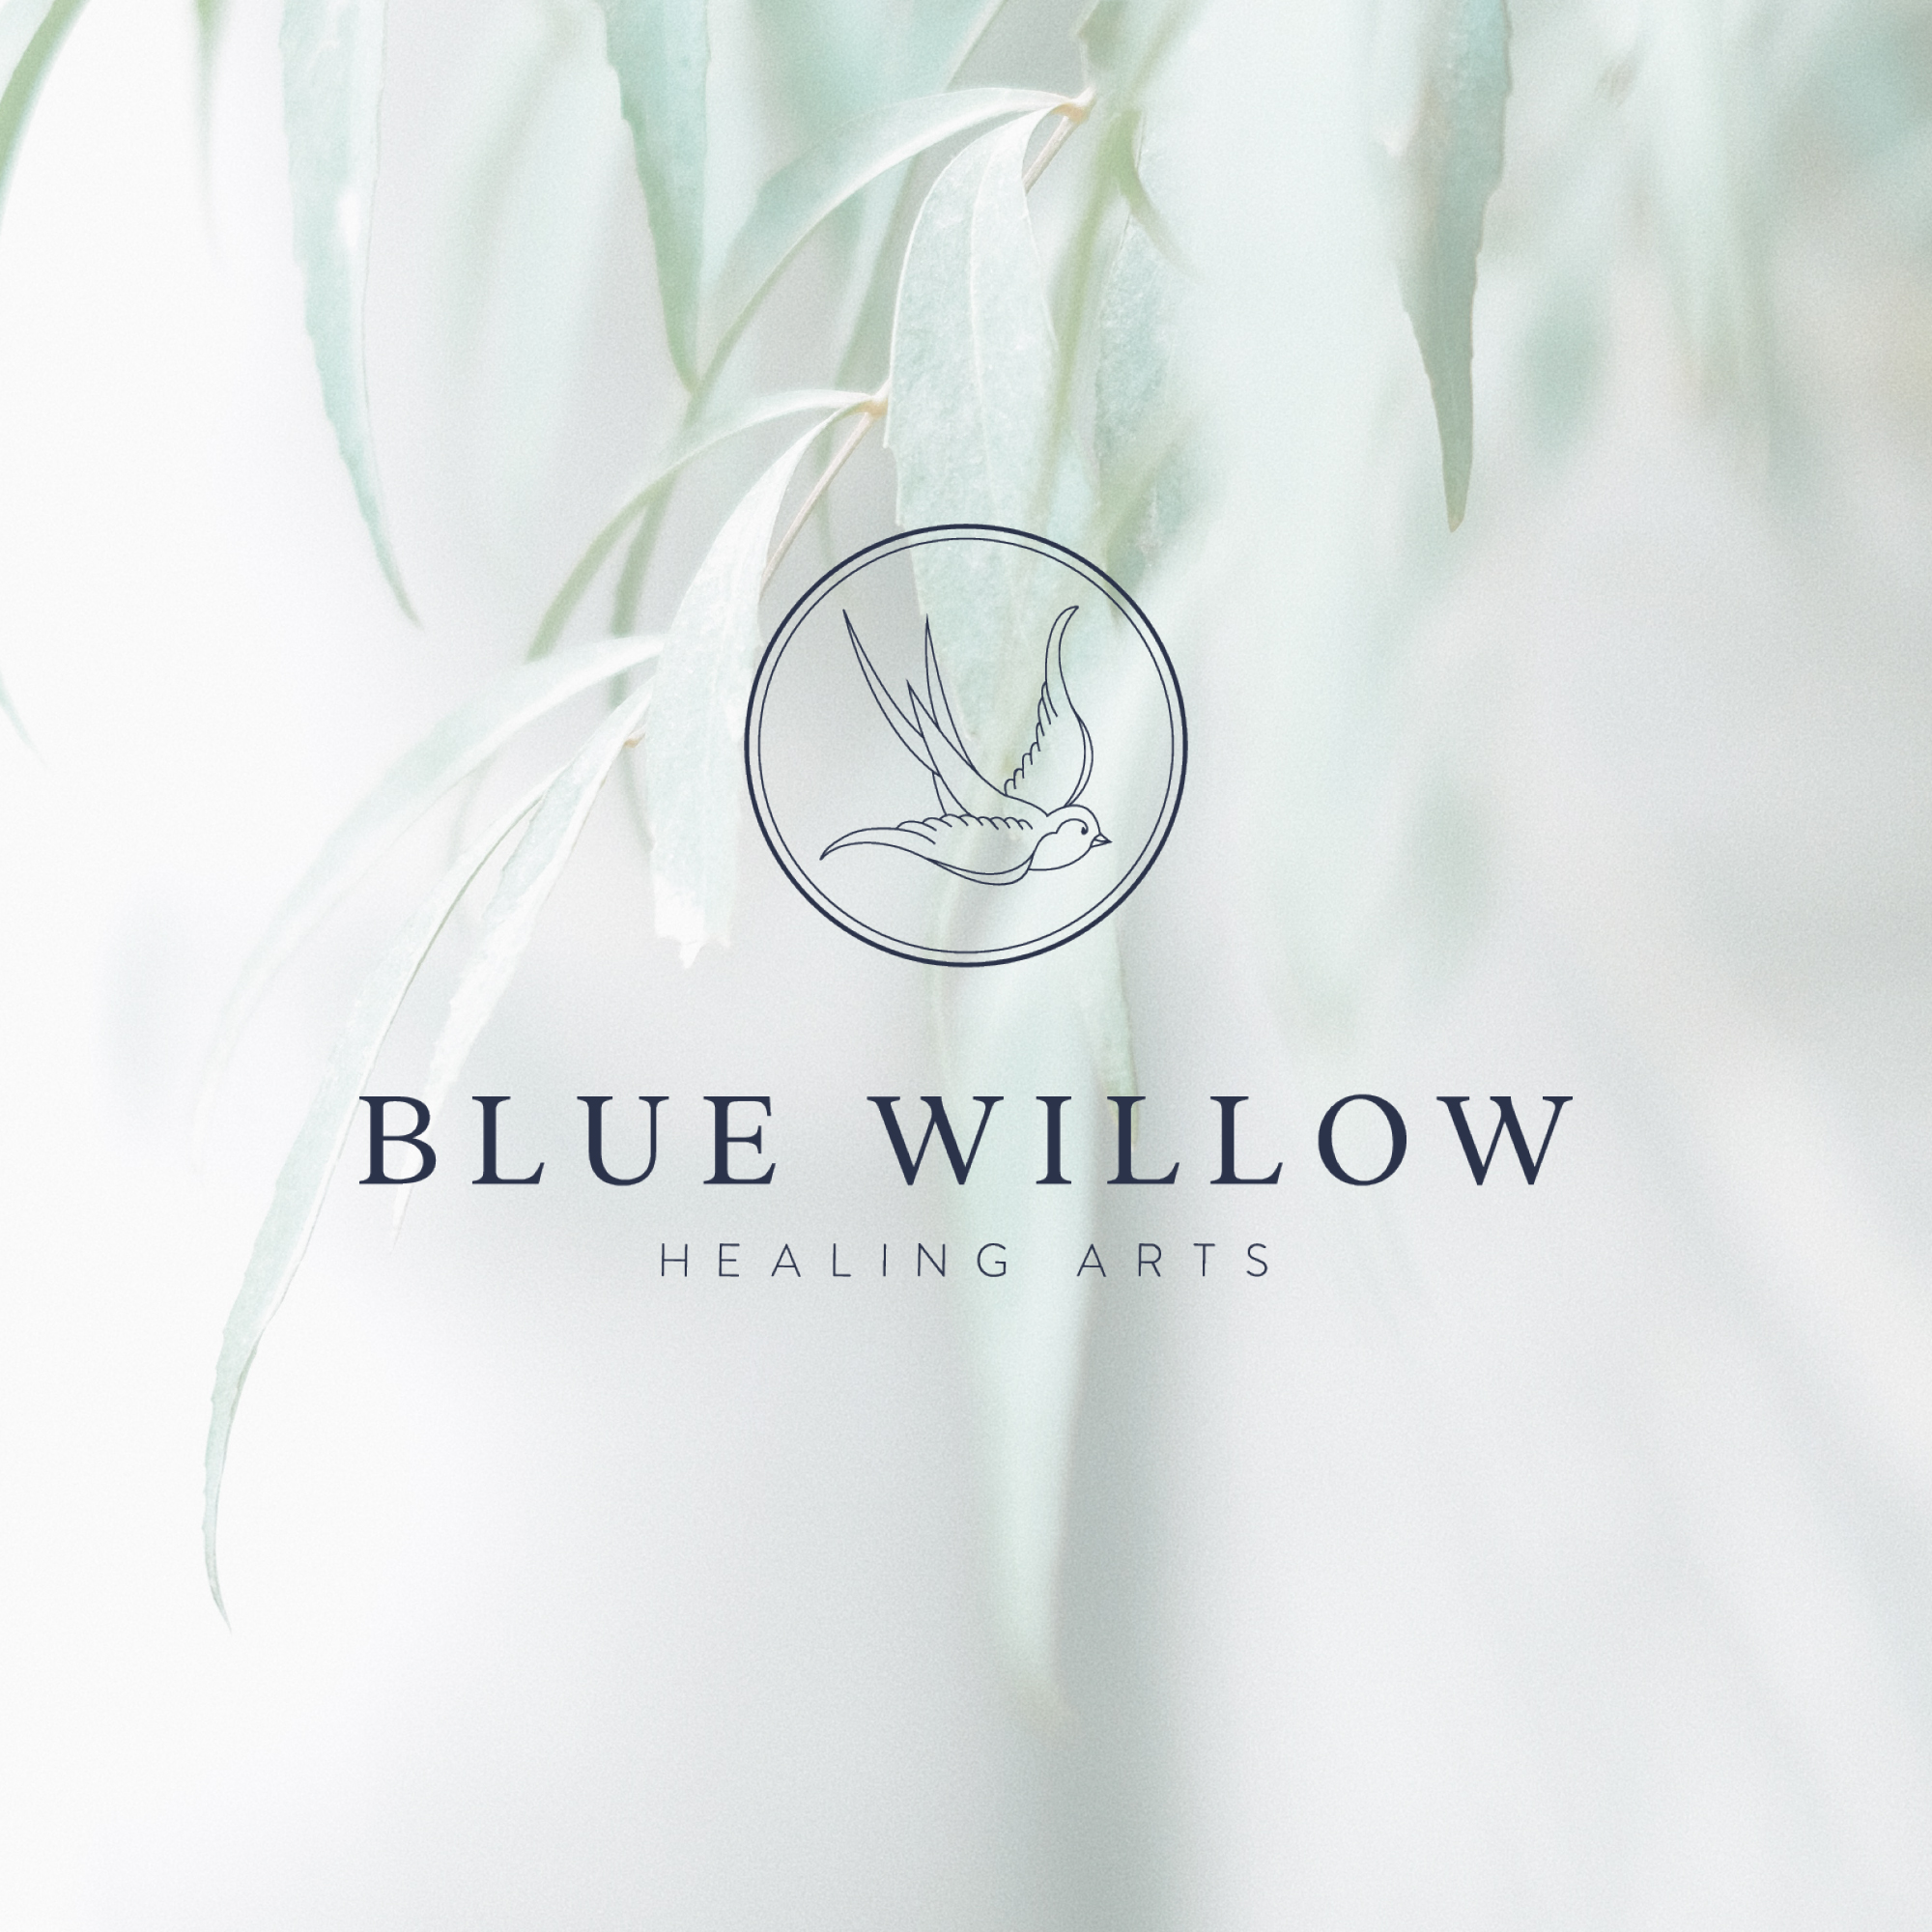 Brand identity design for Blue Willow Healing Arts, a Massachusetts-based acupuncture and wellness practice, by Alexa B. Creative & Design